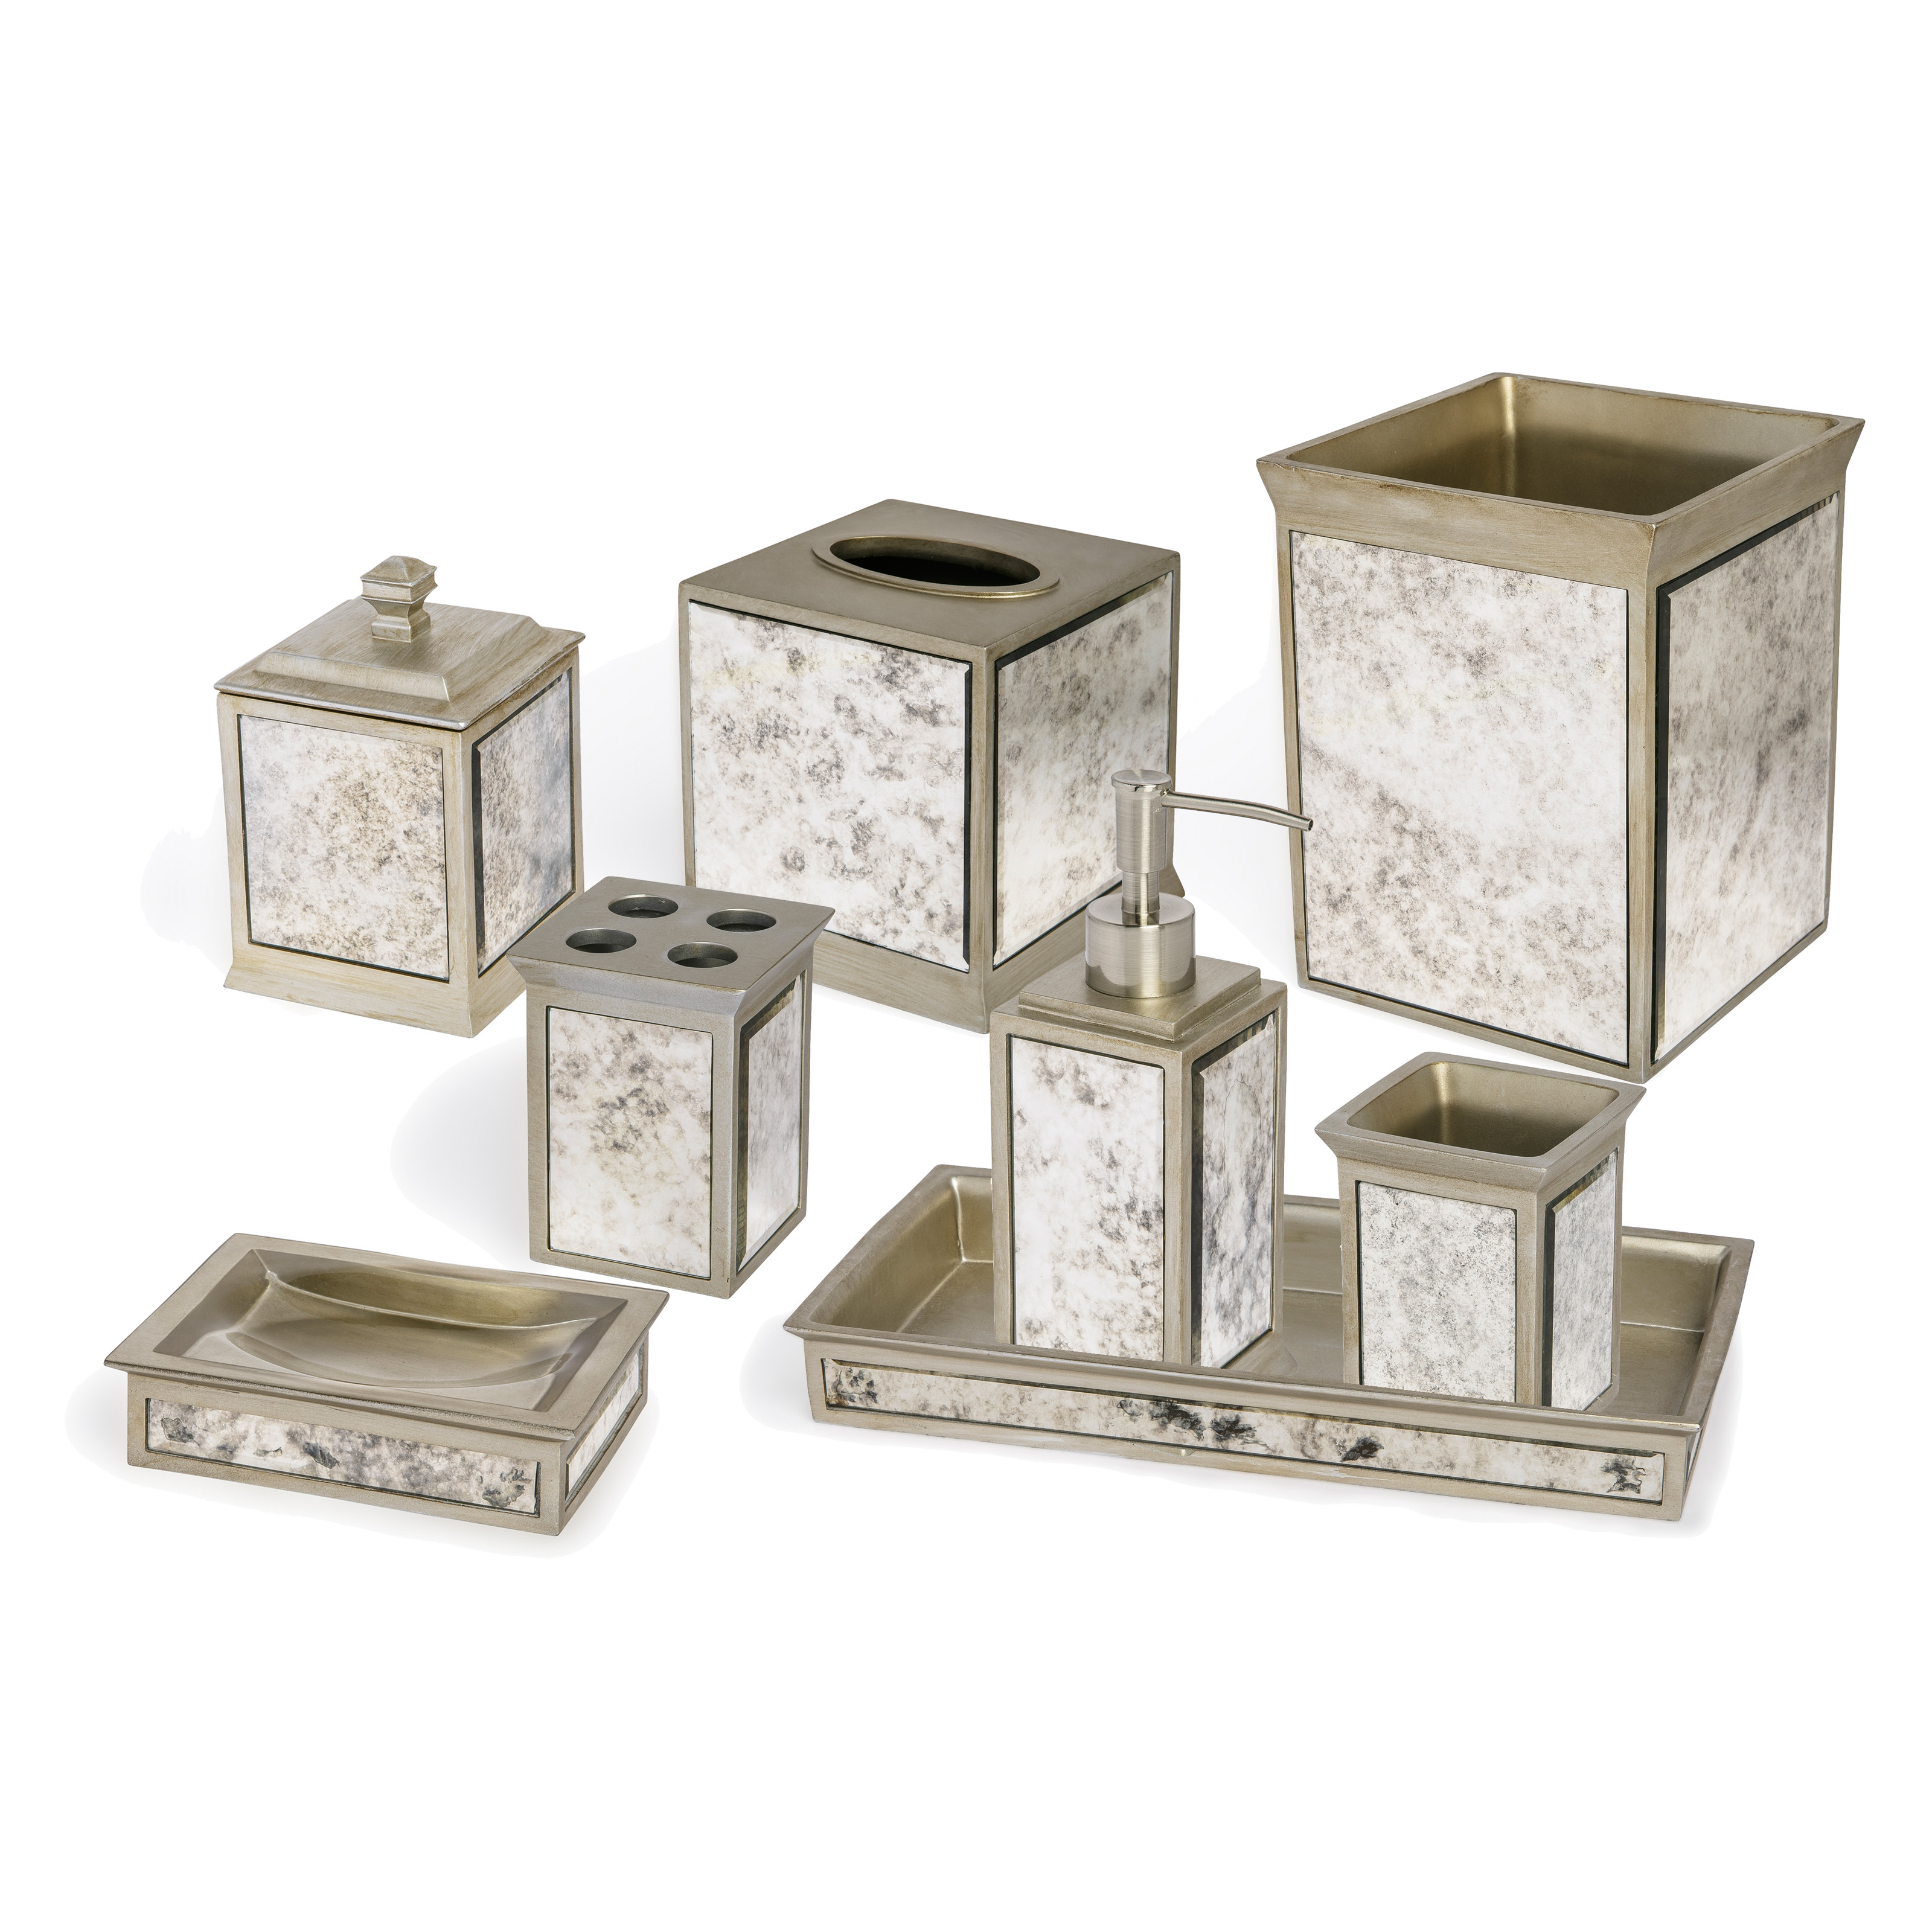 Bath accessories collections all the best accessories in for All bathroom accessories